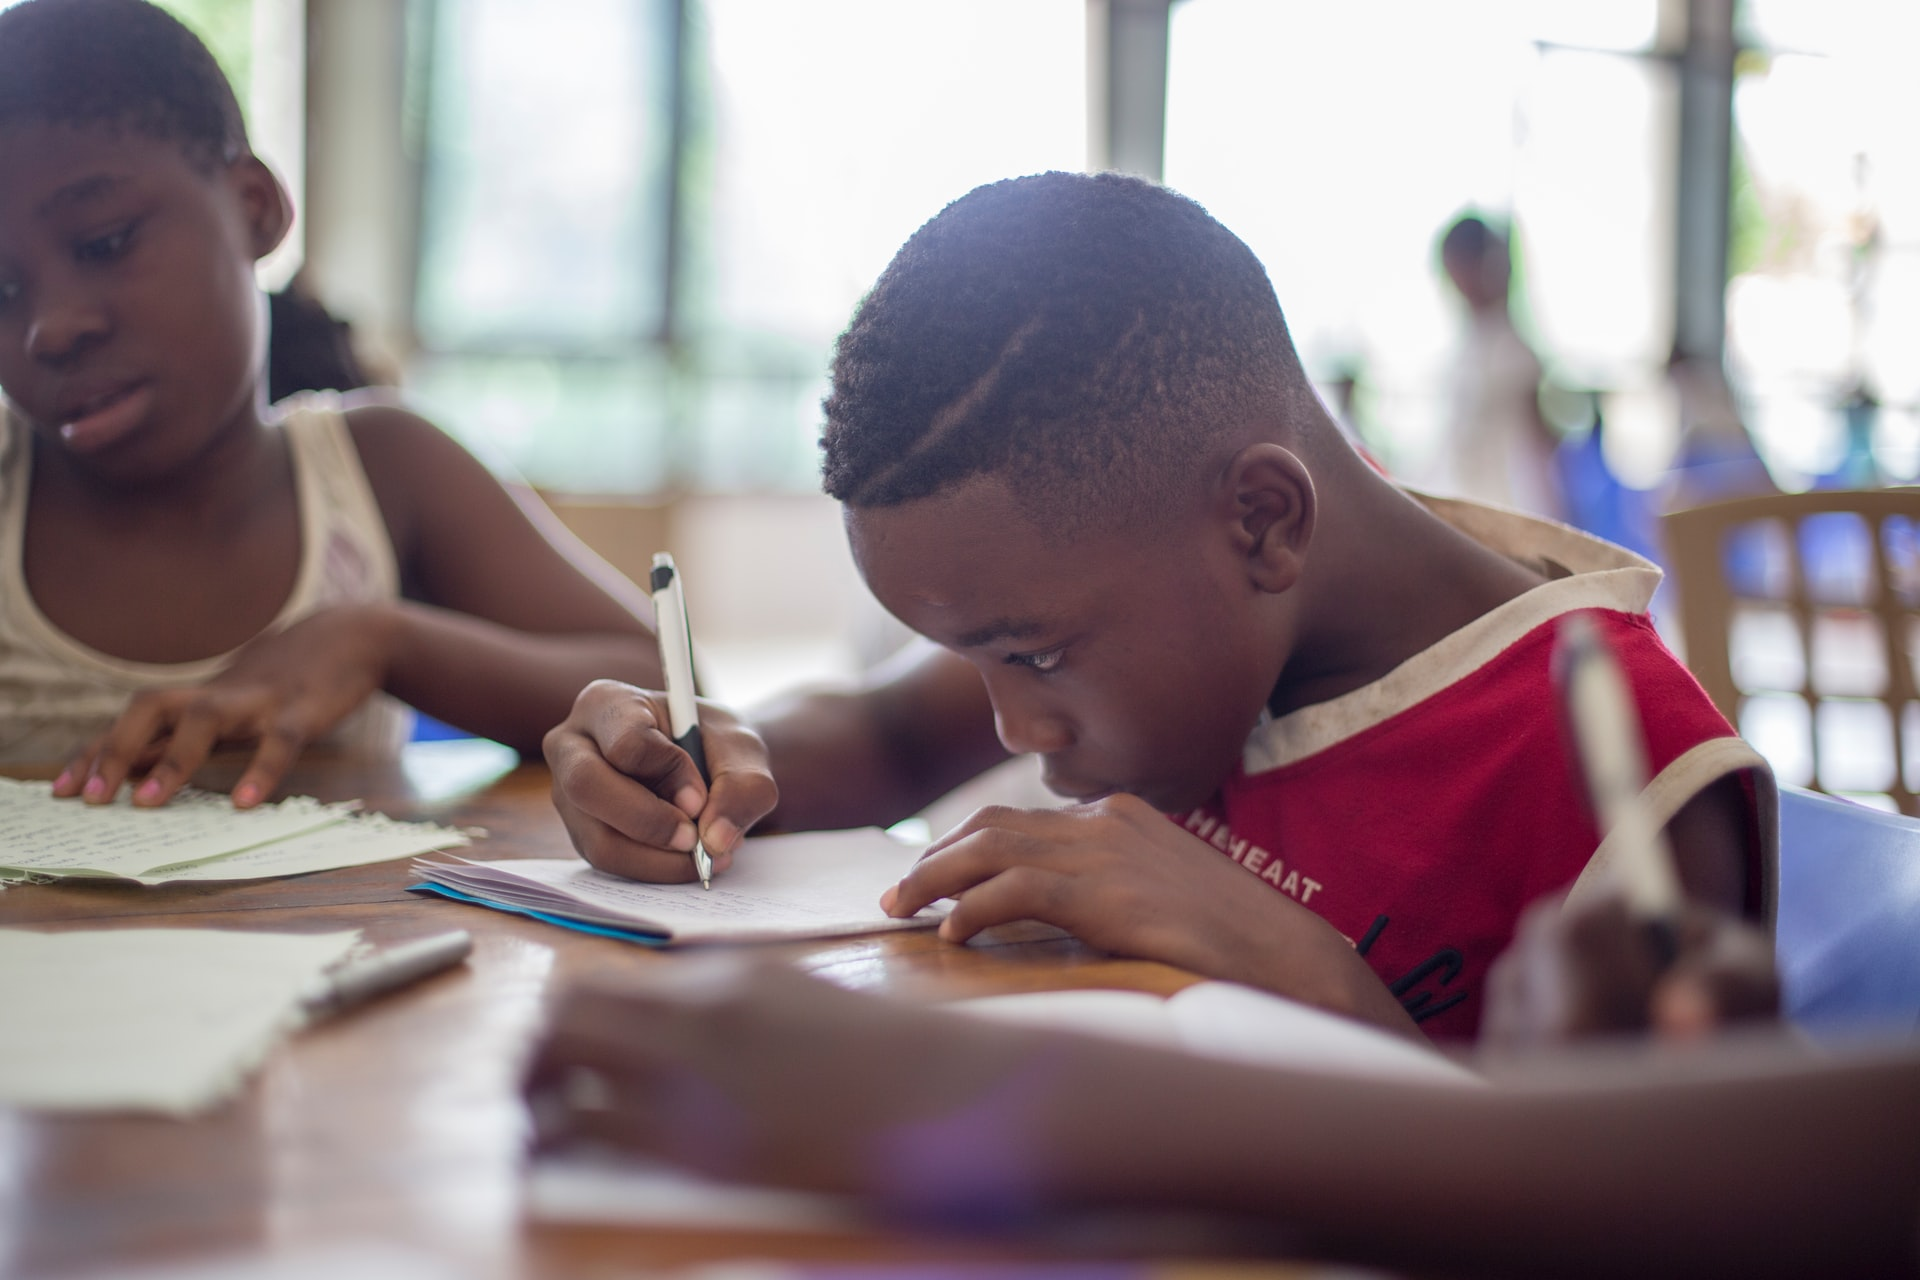 A picture of a young boy completing work at school